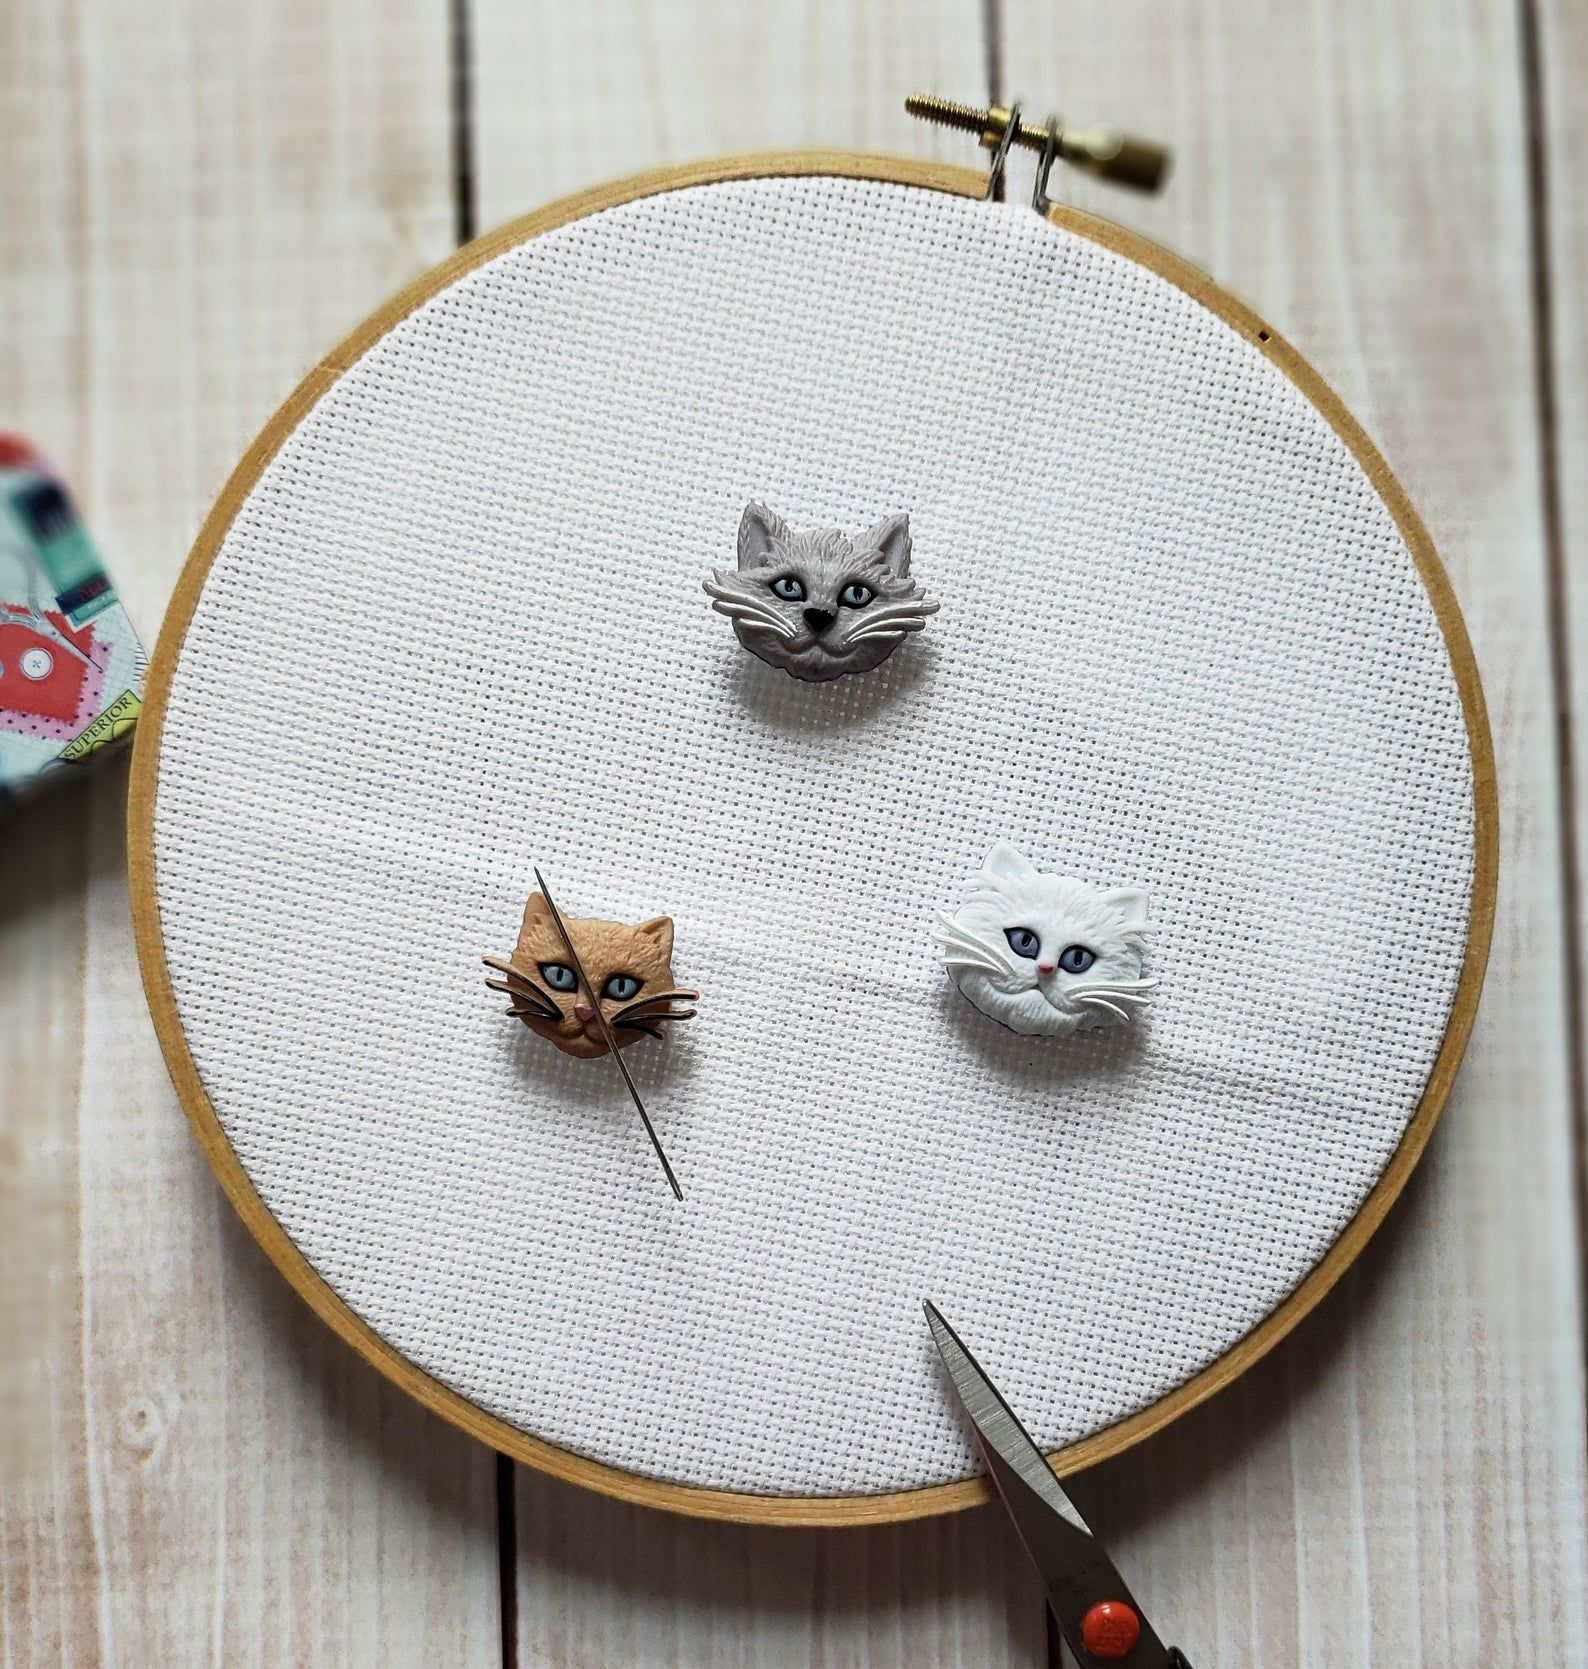 Hey all you Cool Cats needle minder and accessories